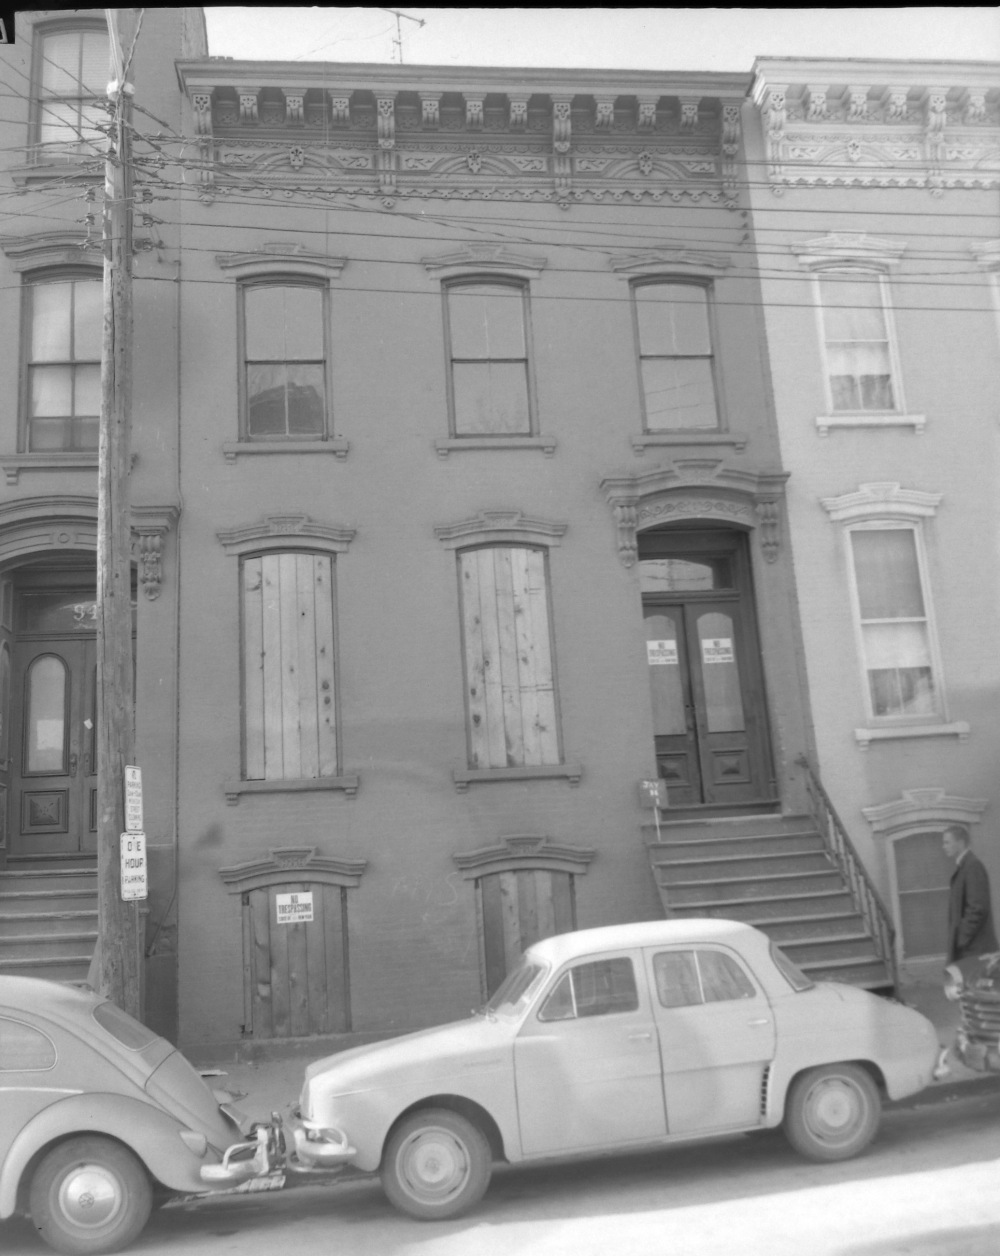 Two doors down from Elise Levine's home, 96 Jay Street is boarded up, October 1962. The property was vacant even before State appropriated it. NYS Archives.